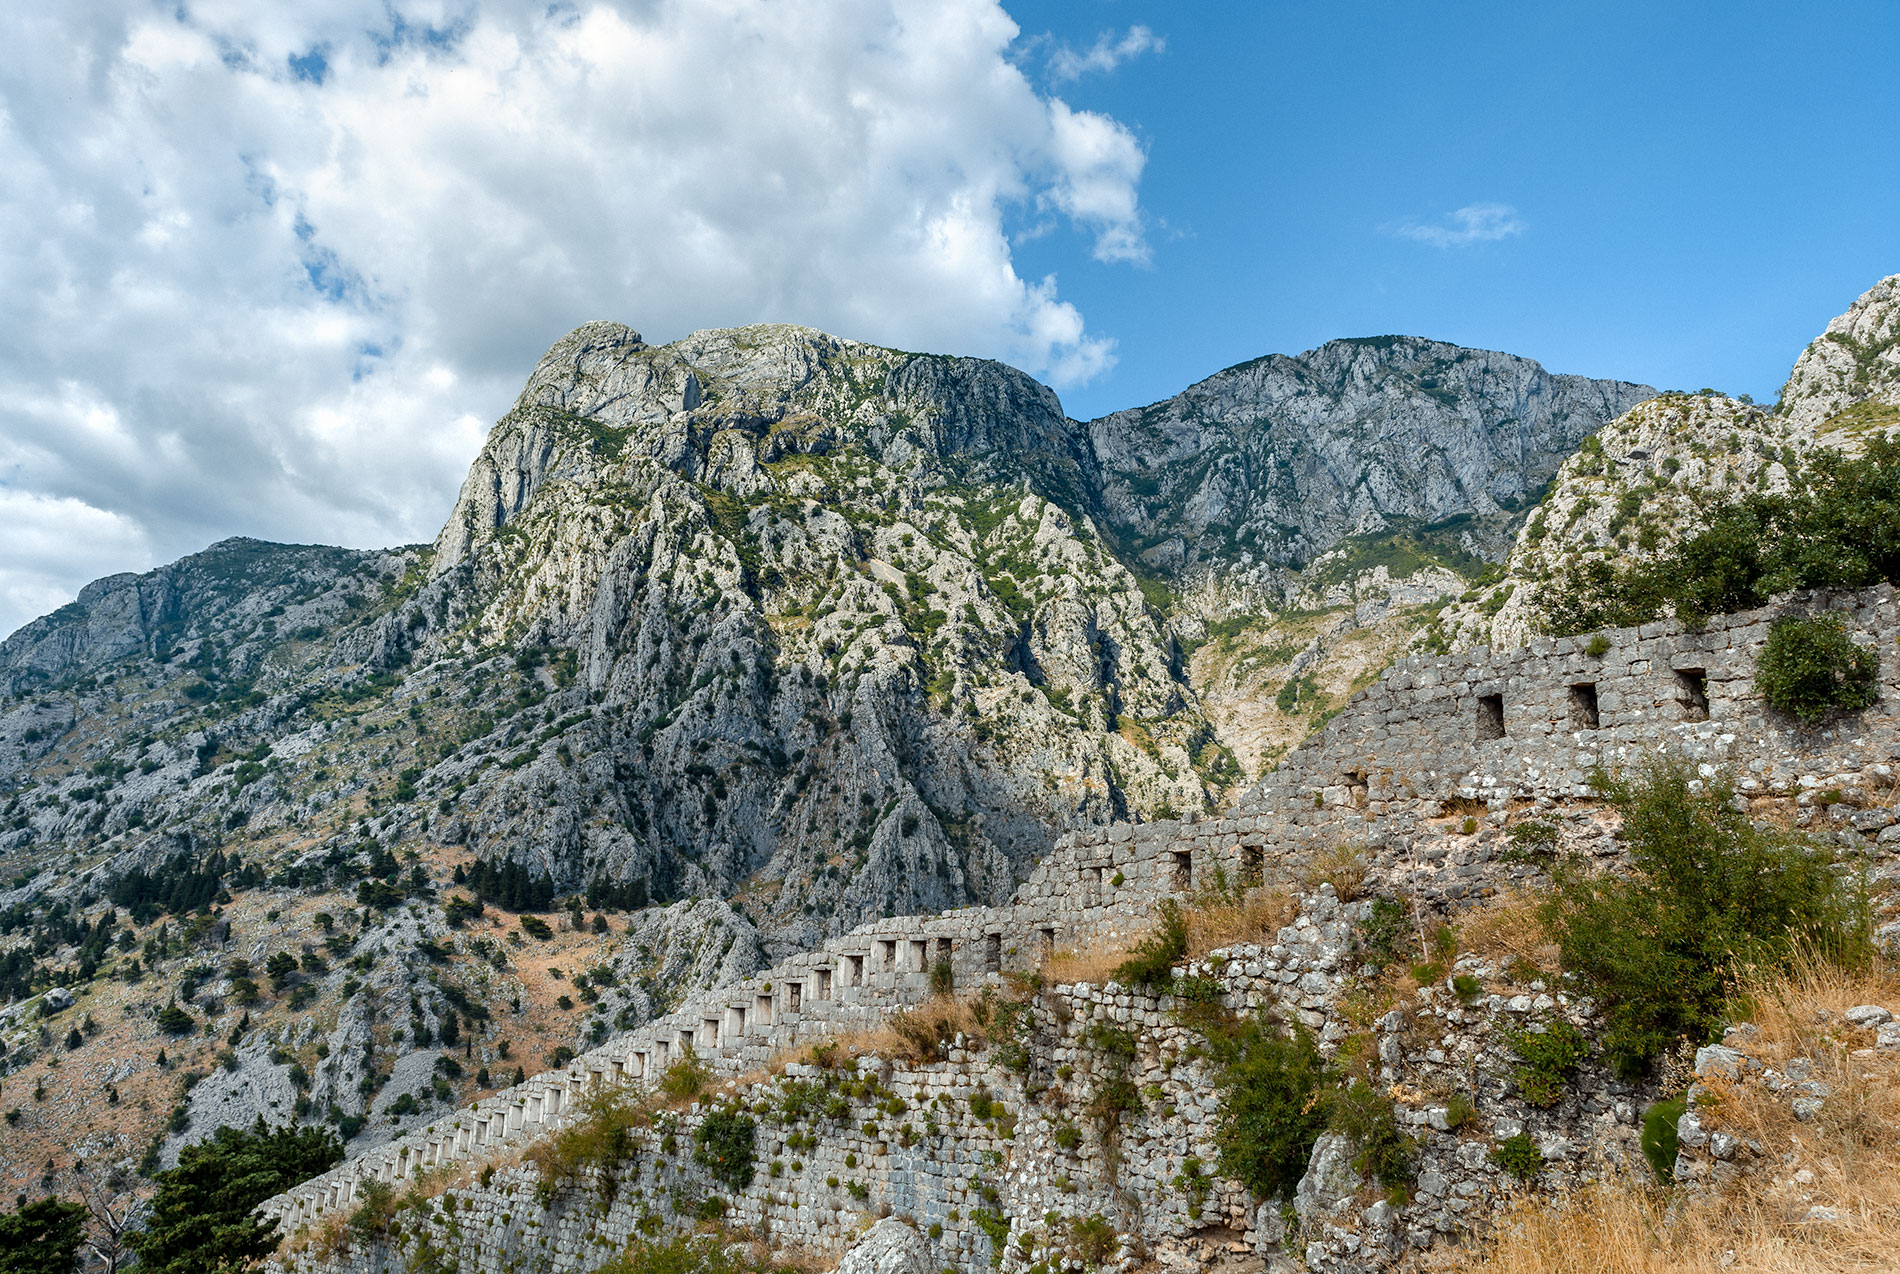 The Kotor City Walls are still well preserved and are one of the best places to take photos of Montenegro